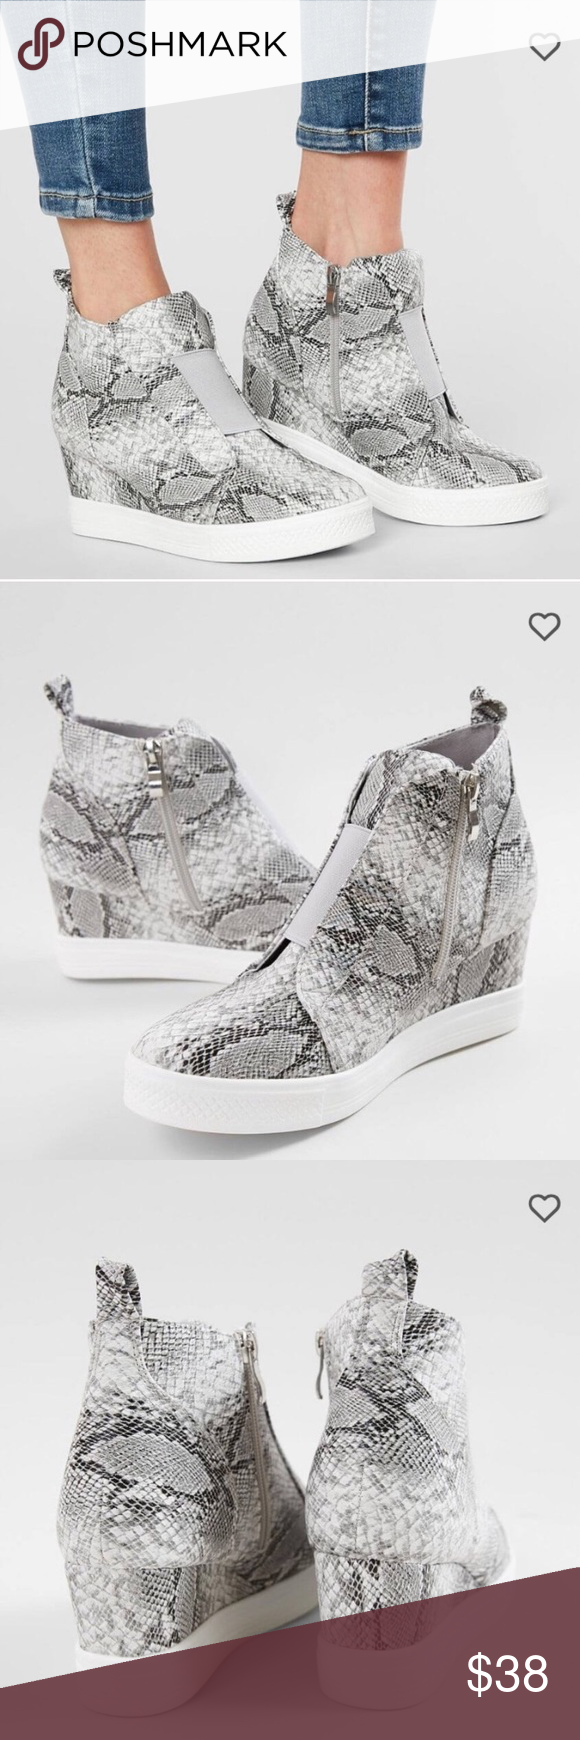 CCOCCI Zoey snakeskin wedge sneakers